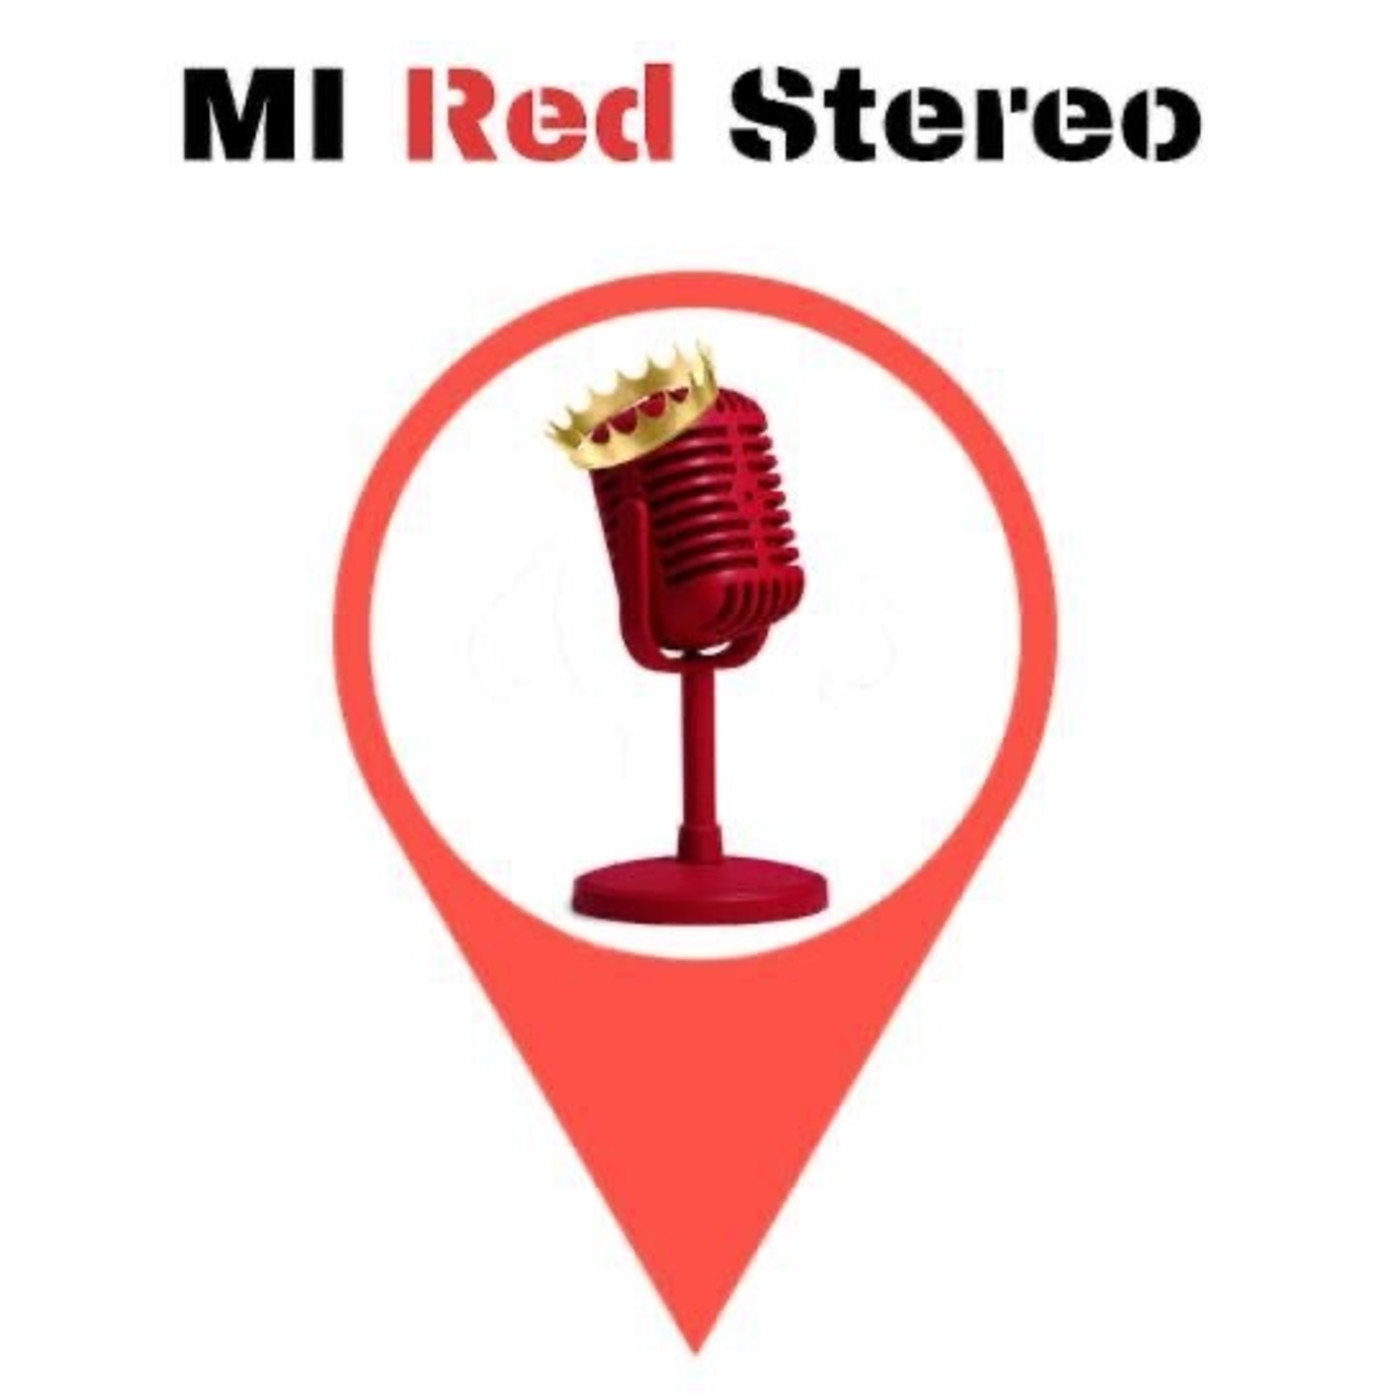 MIRED STEREO